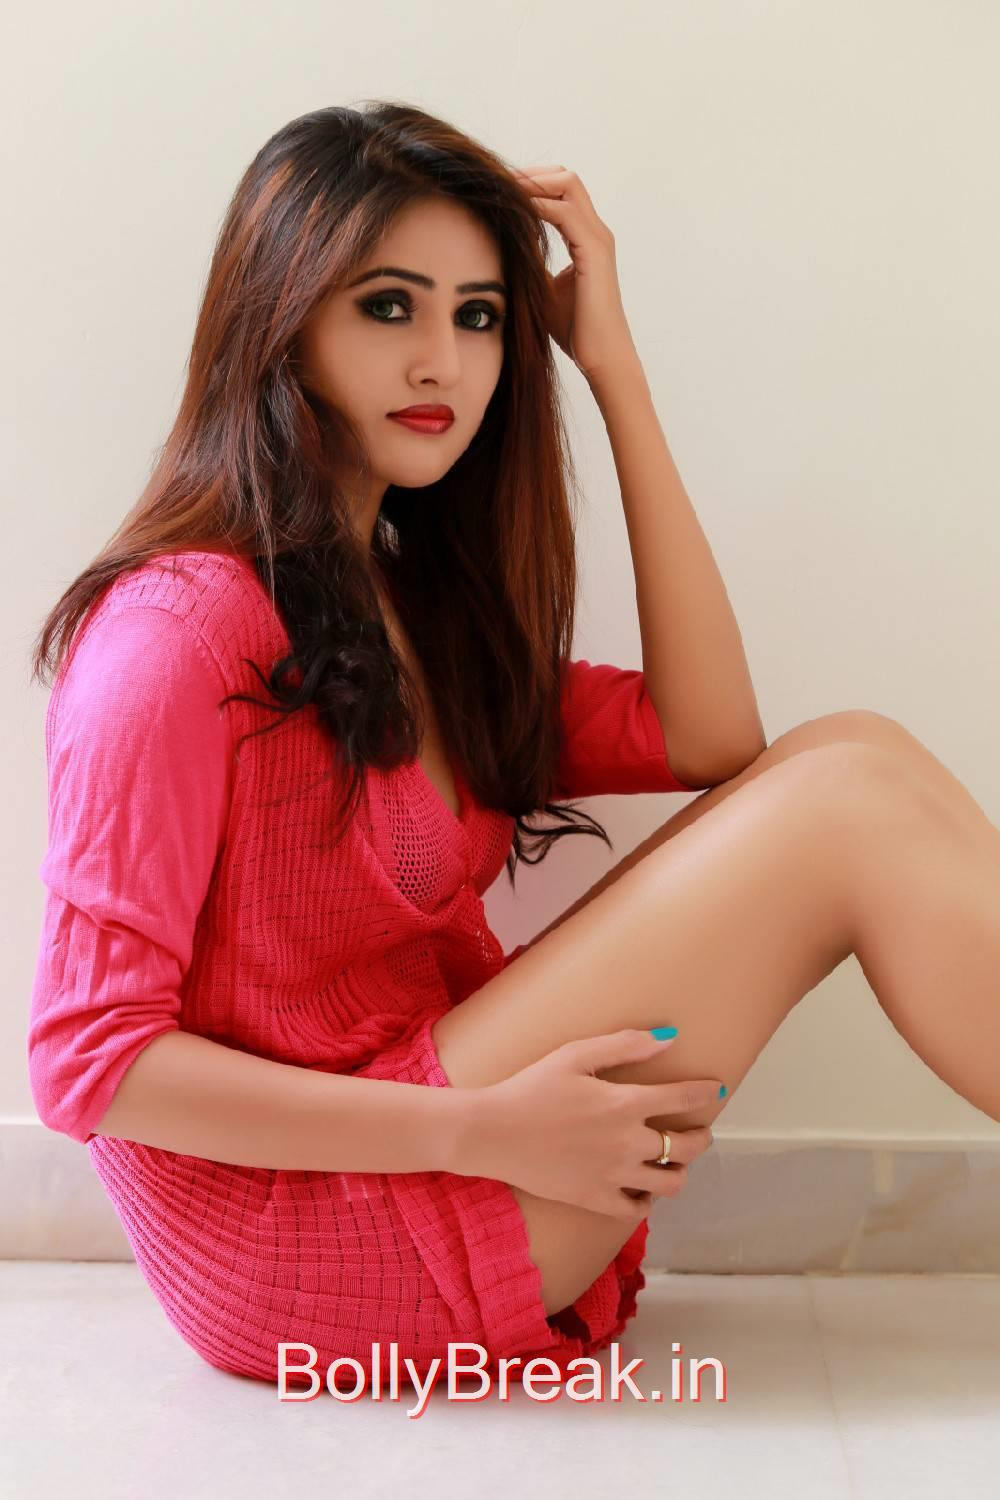 Sony Charishta Photoshoot Stills, Hot Actress Sony Charishta Red Nighty Photo Gallery 2015